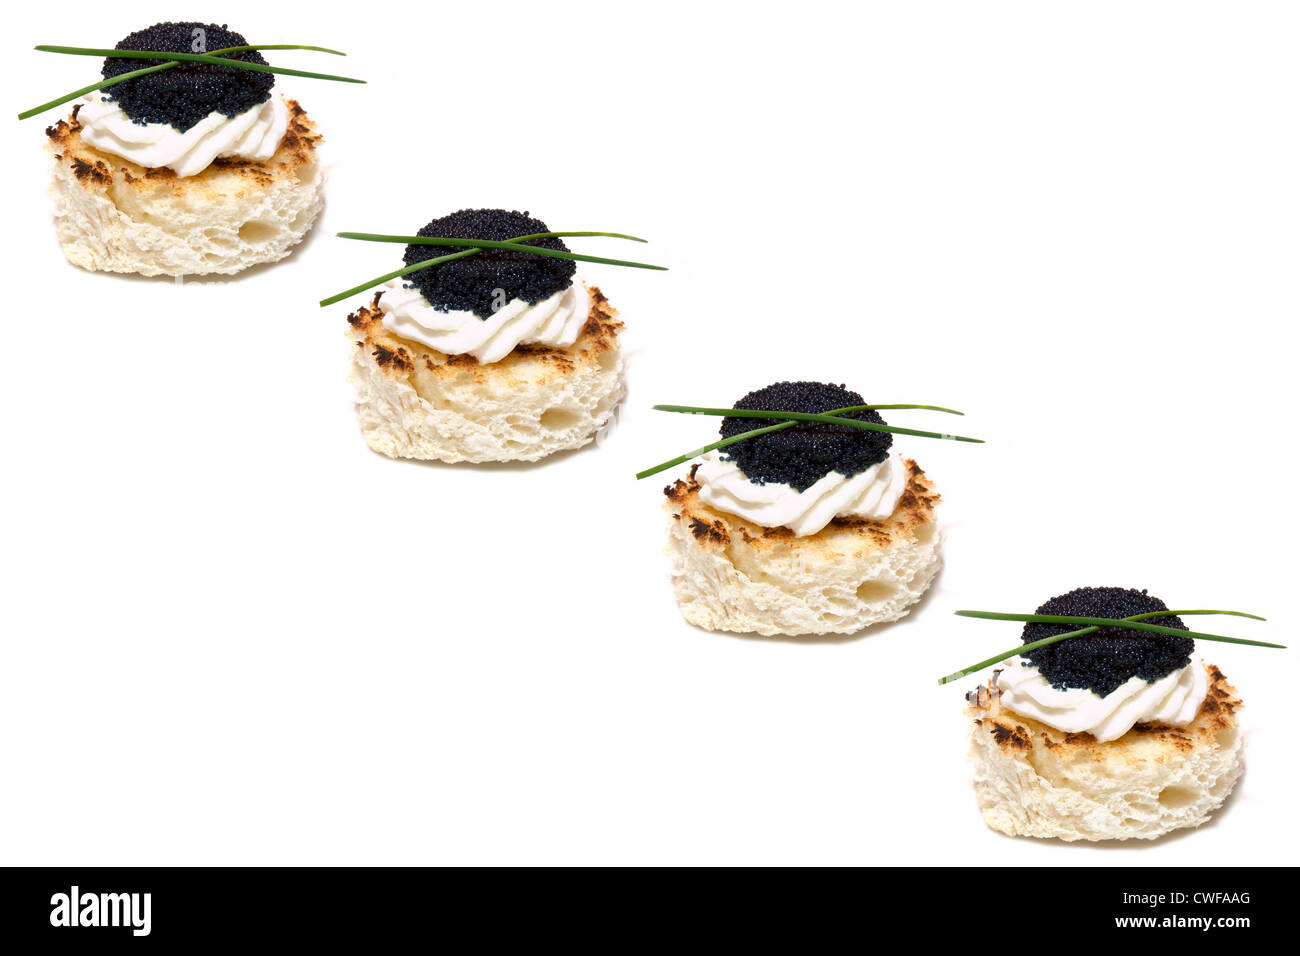 Red and black caviar canapés decorated with chives, on white background. - Stock Image